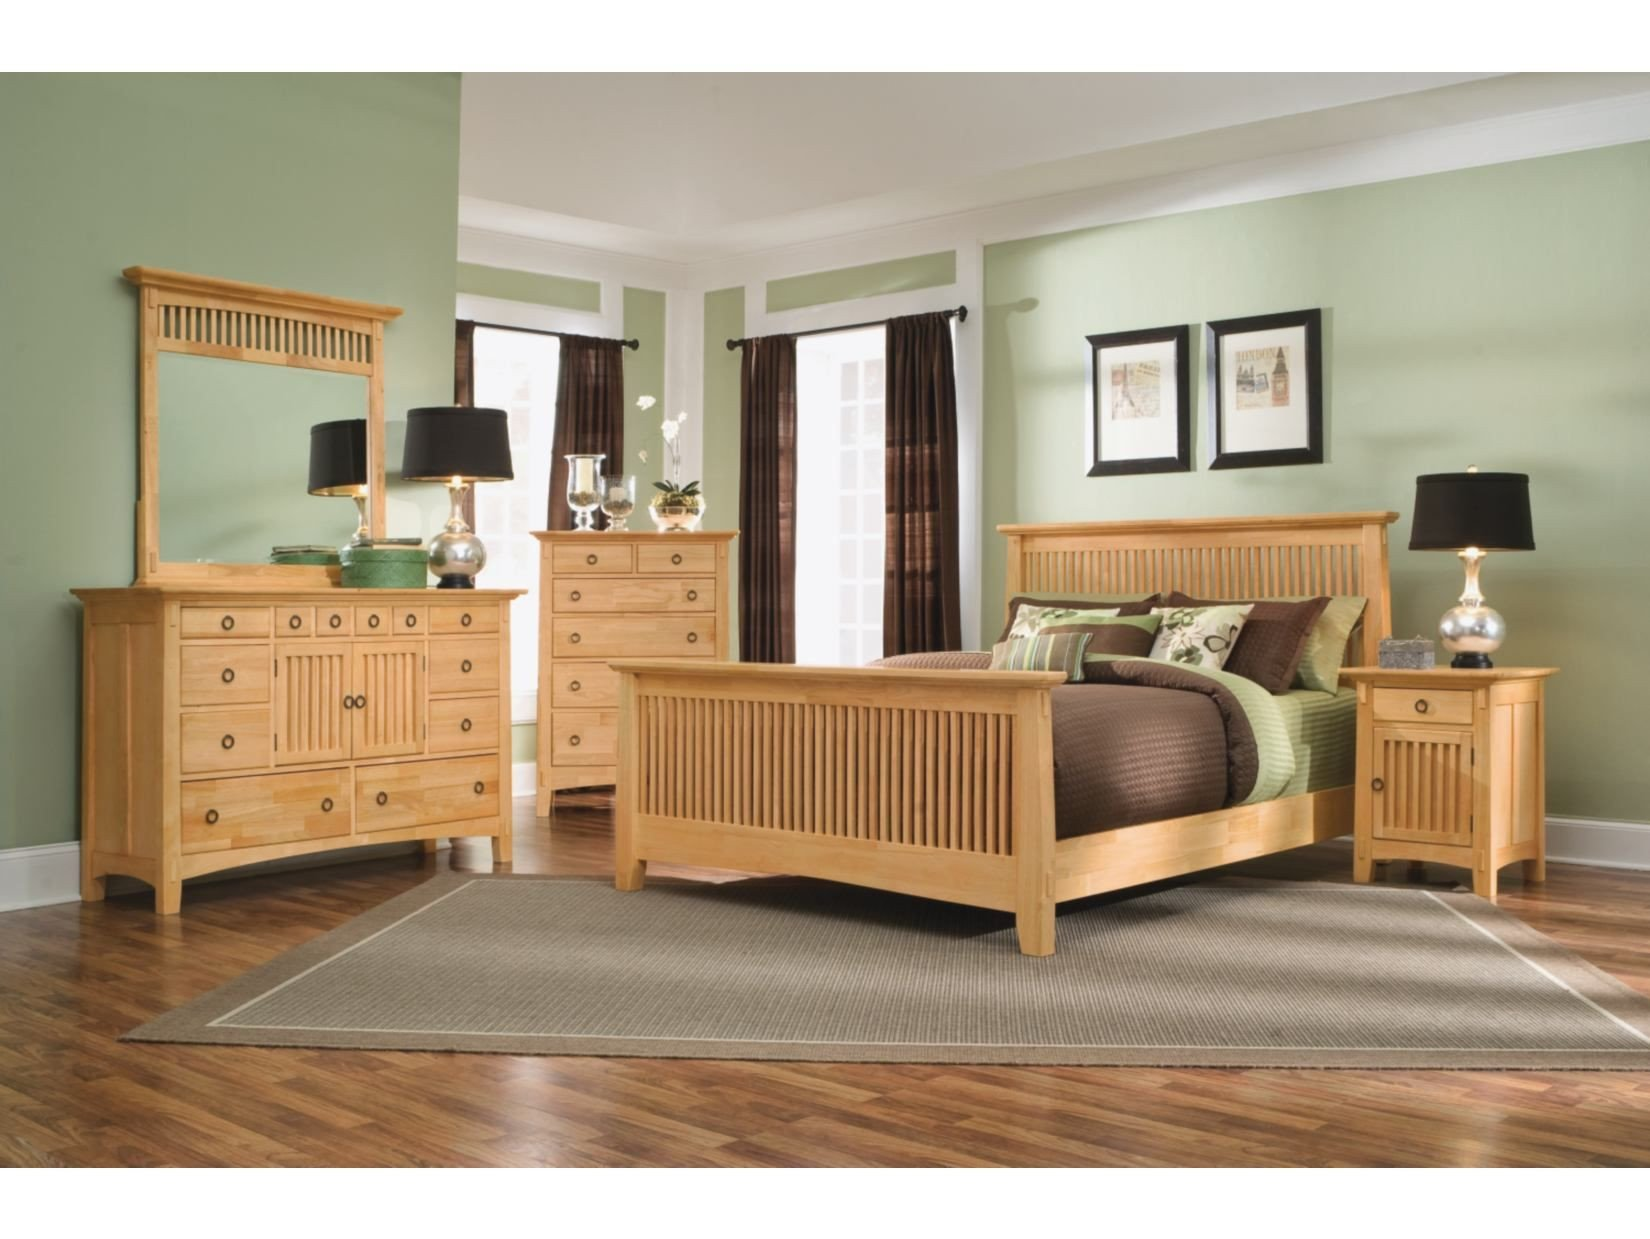 Natural Wood Bedroom Set Luxury Arts & Crafts 5 Pc Bedroom Package American Signature